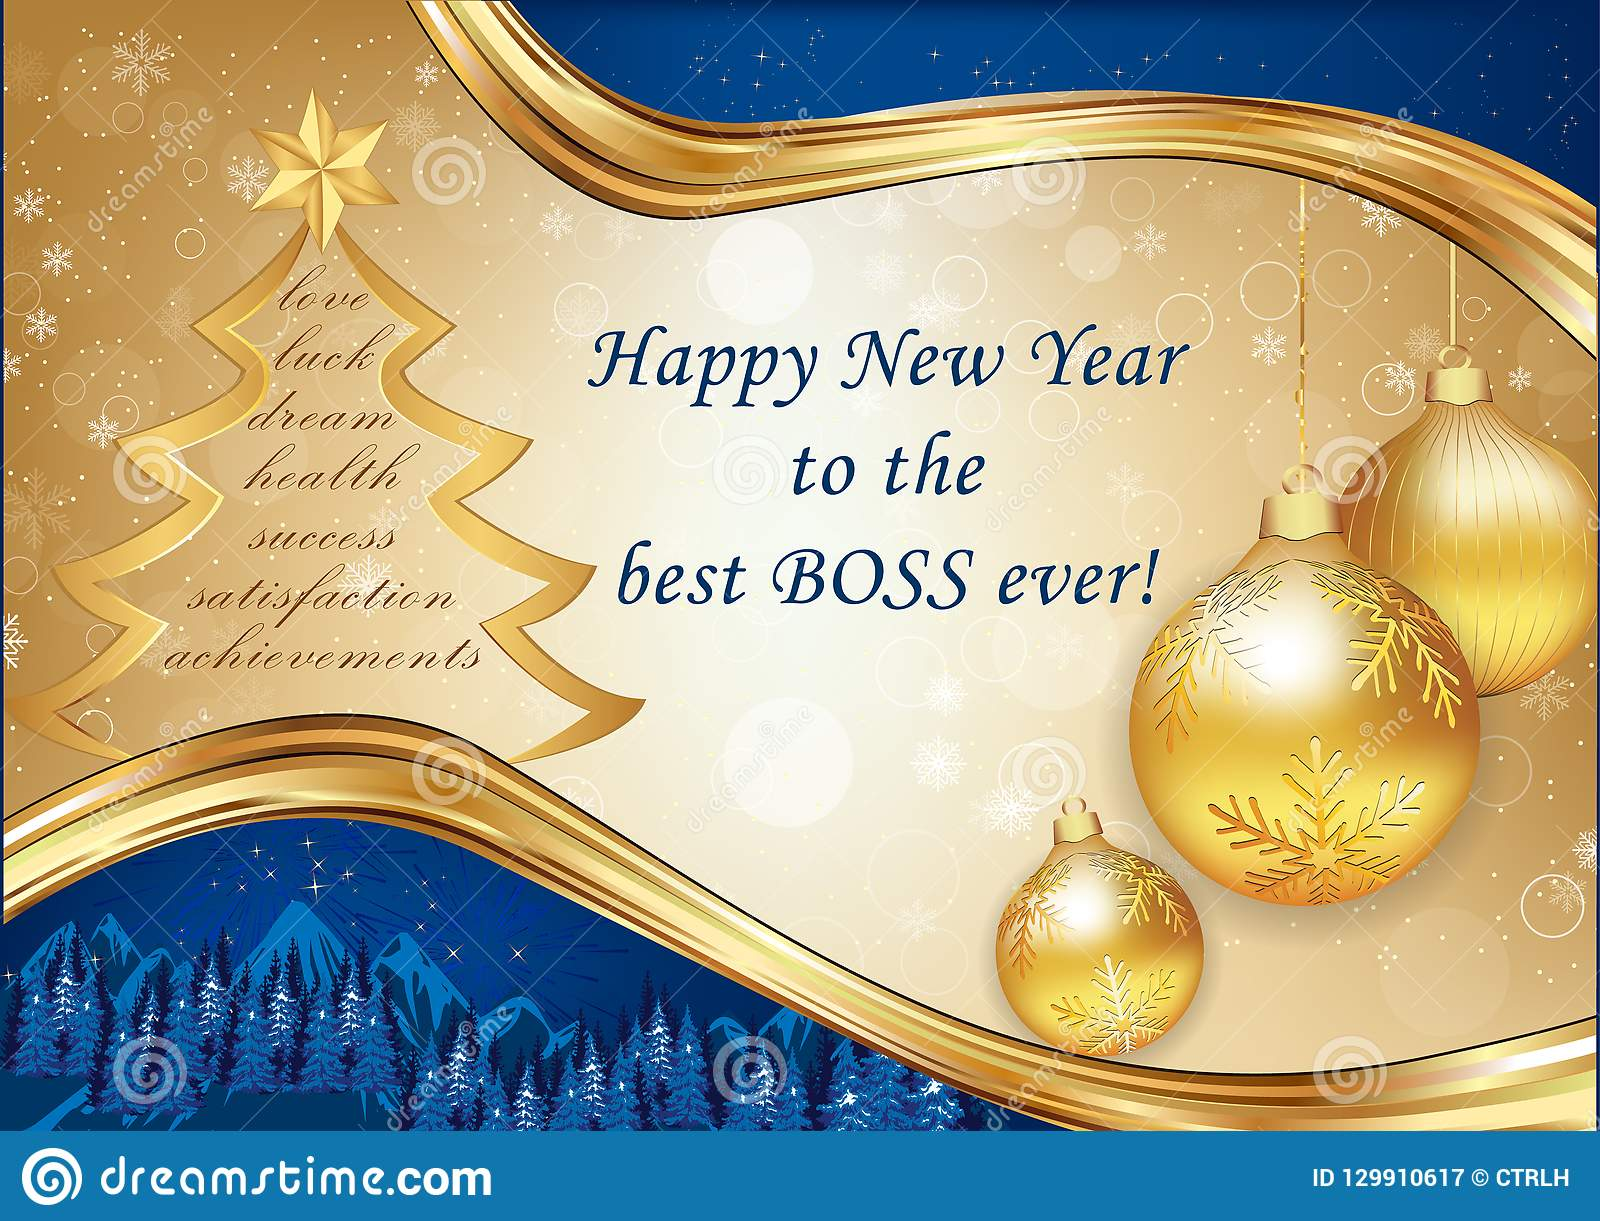 corporate christmas and new year greeting card for the boss